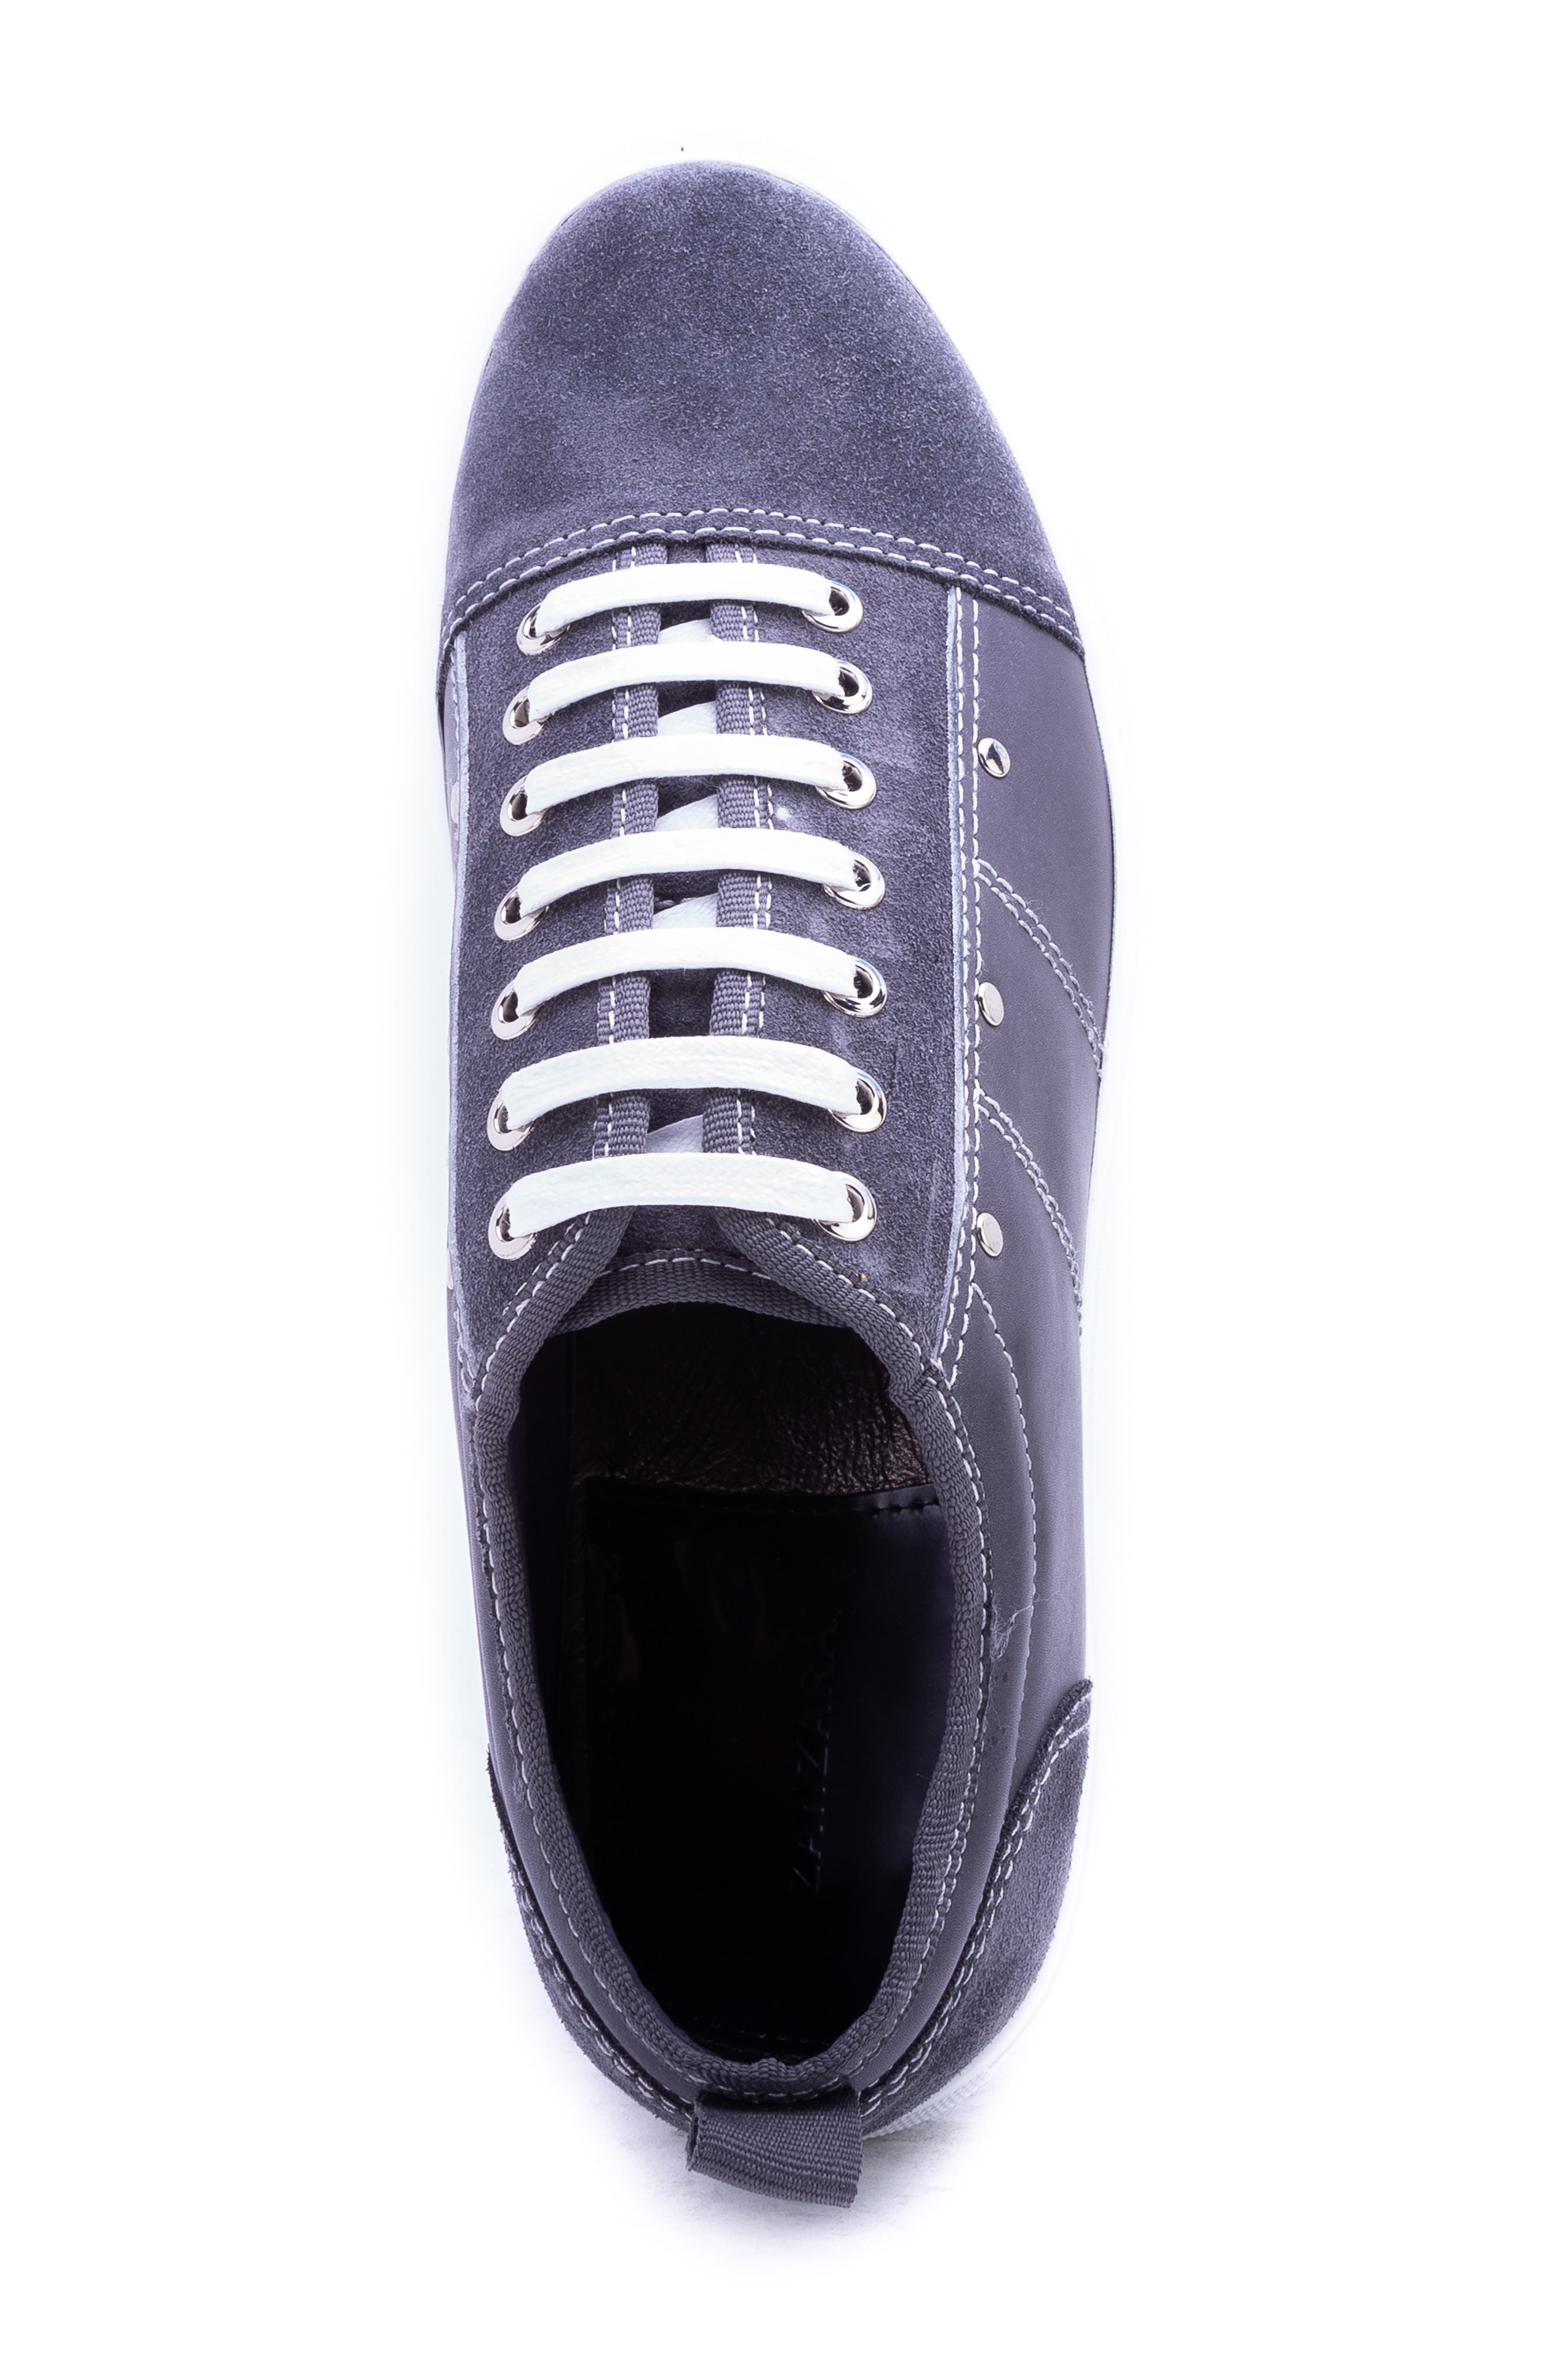 Severn Studded Low Top Sneaker,                             Alternate thumbnail 5, color,                             GREY SUEDE/ LEATHER